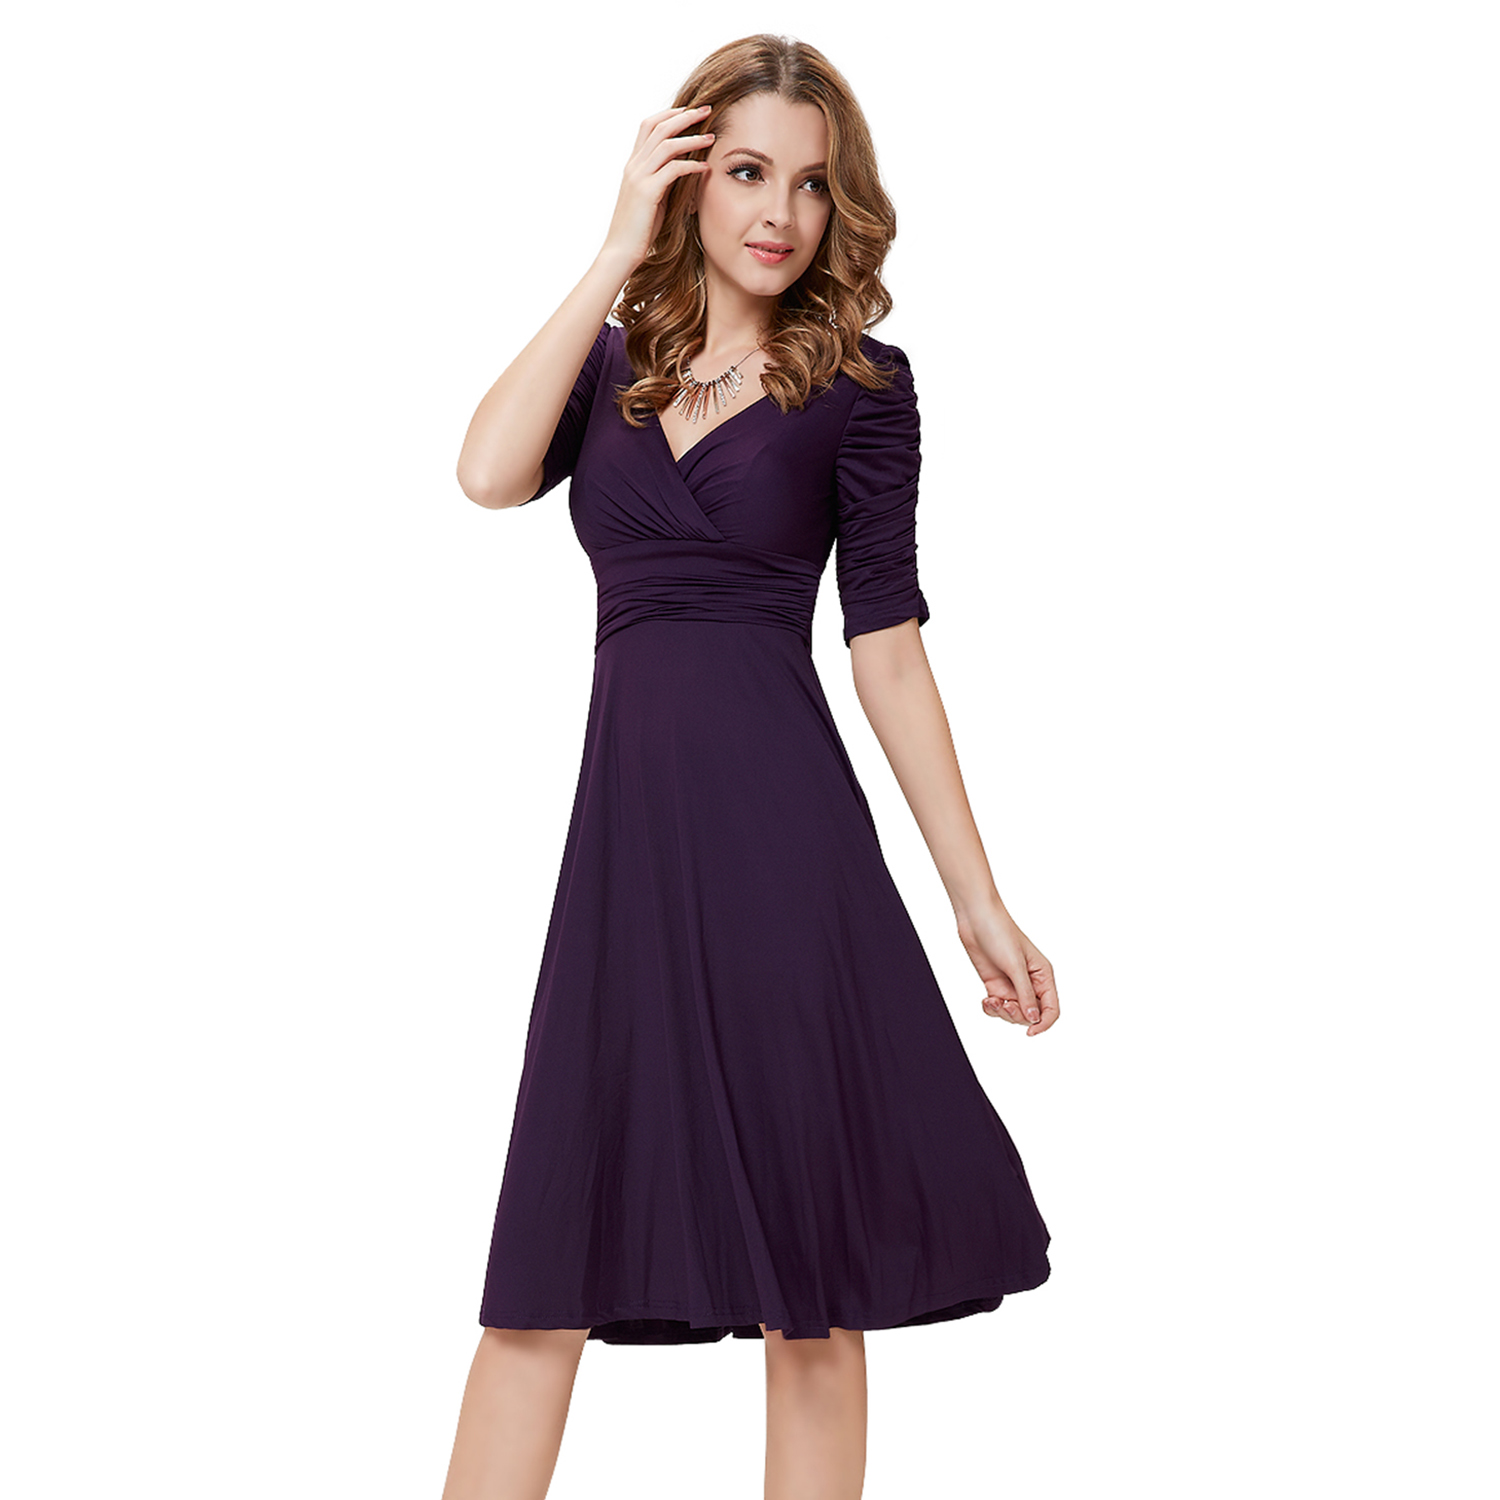 Women Short Sexy Sleeves Prom Party Casual Cocktail Club Ball Gown Dresses 03632  eBay